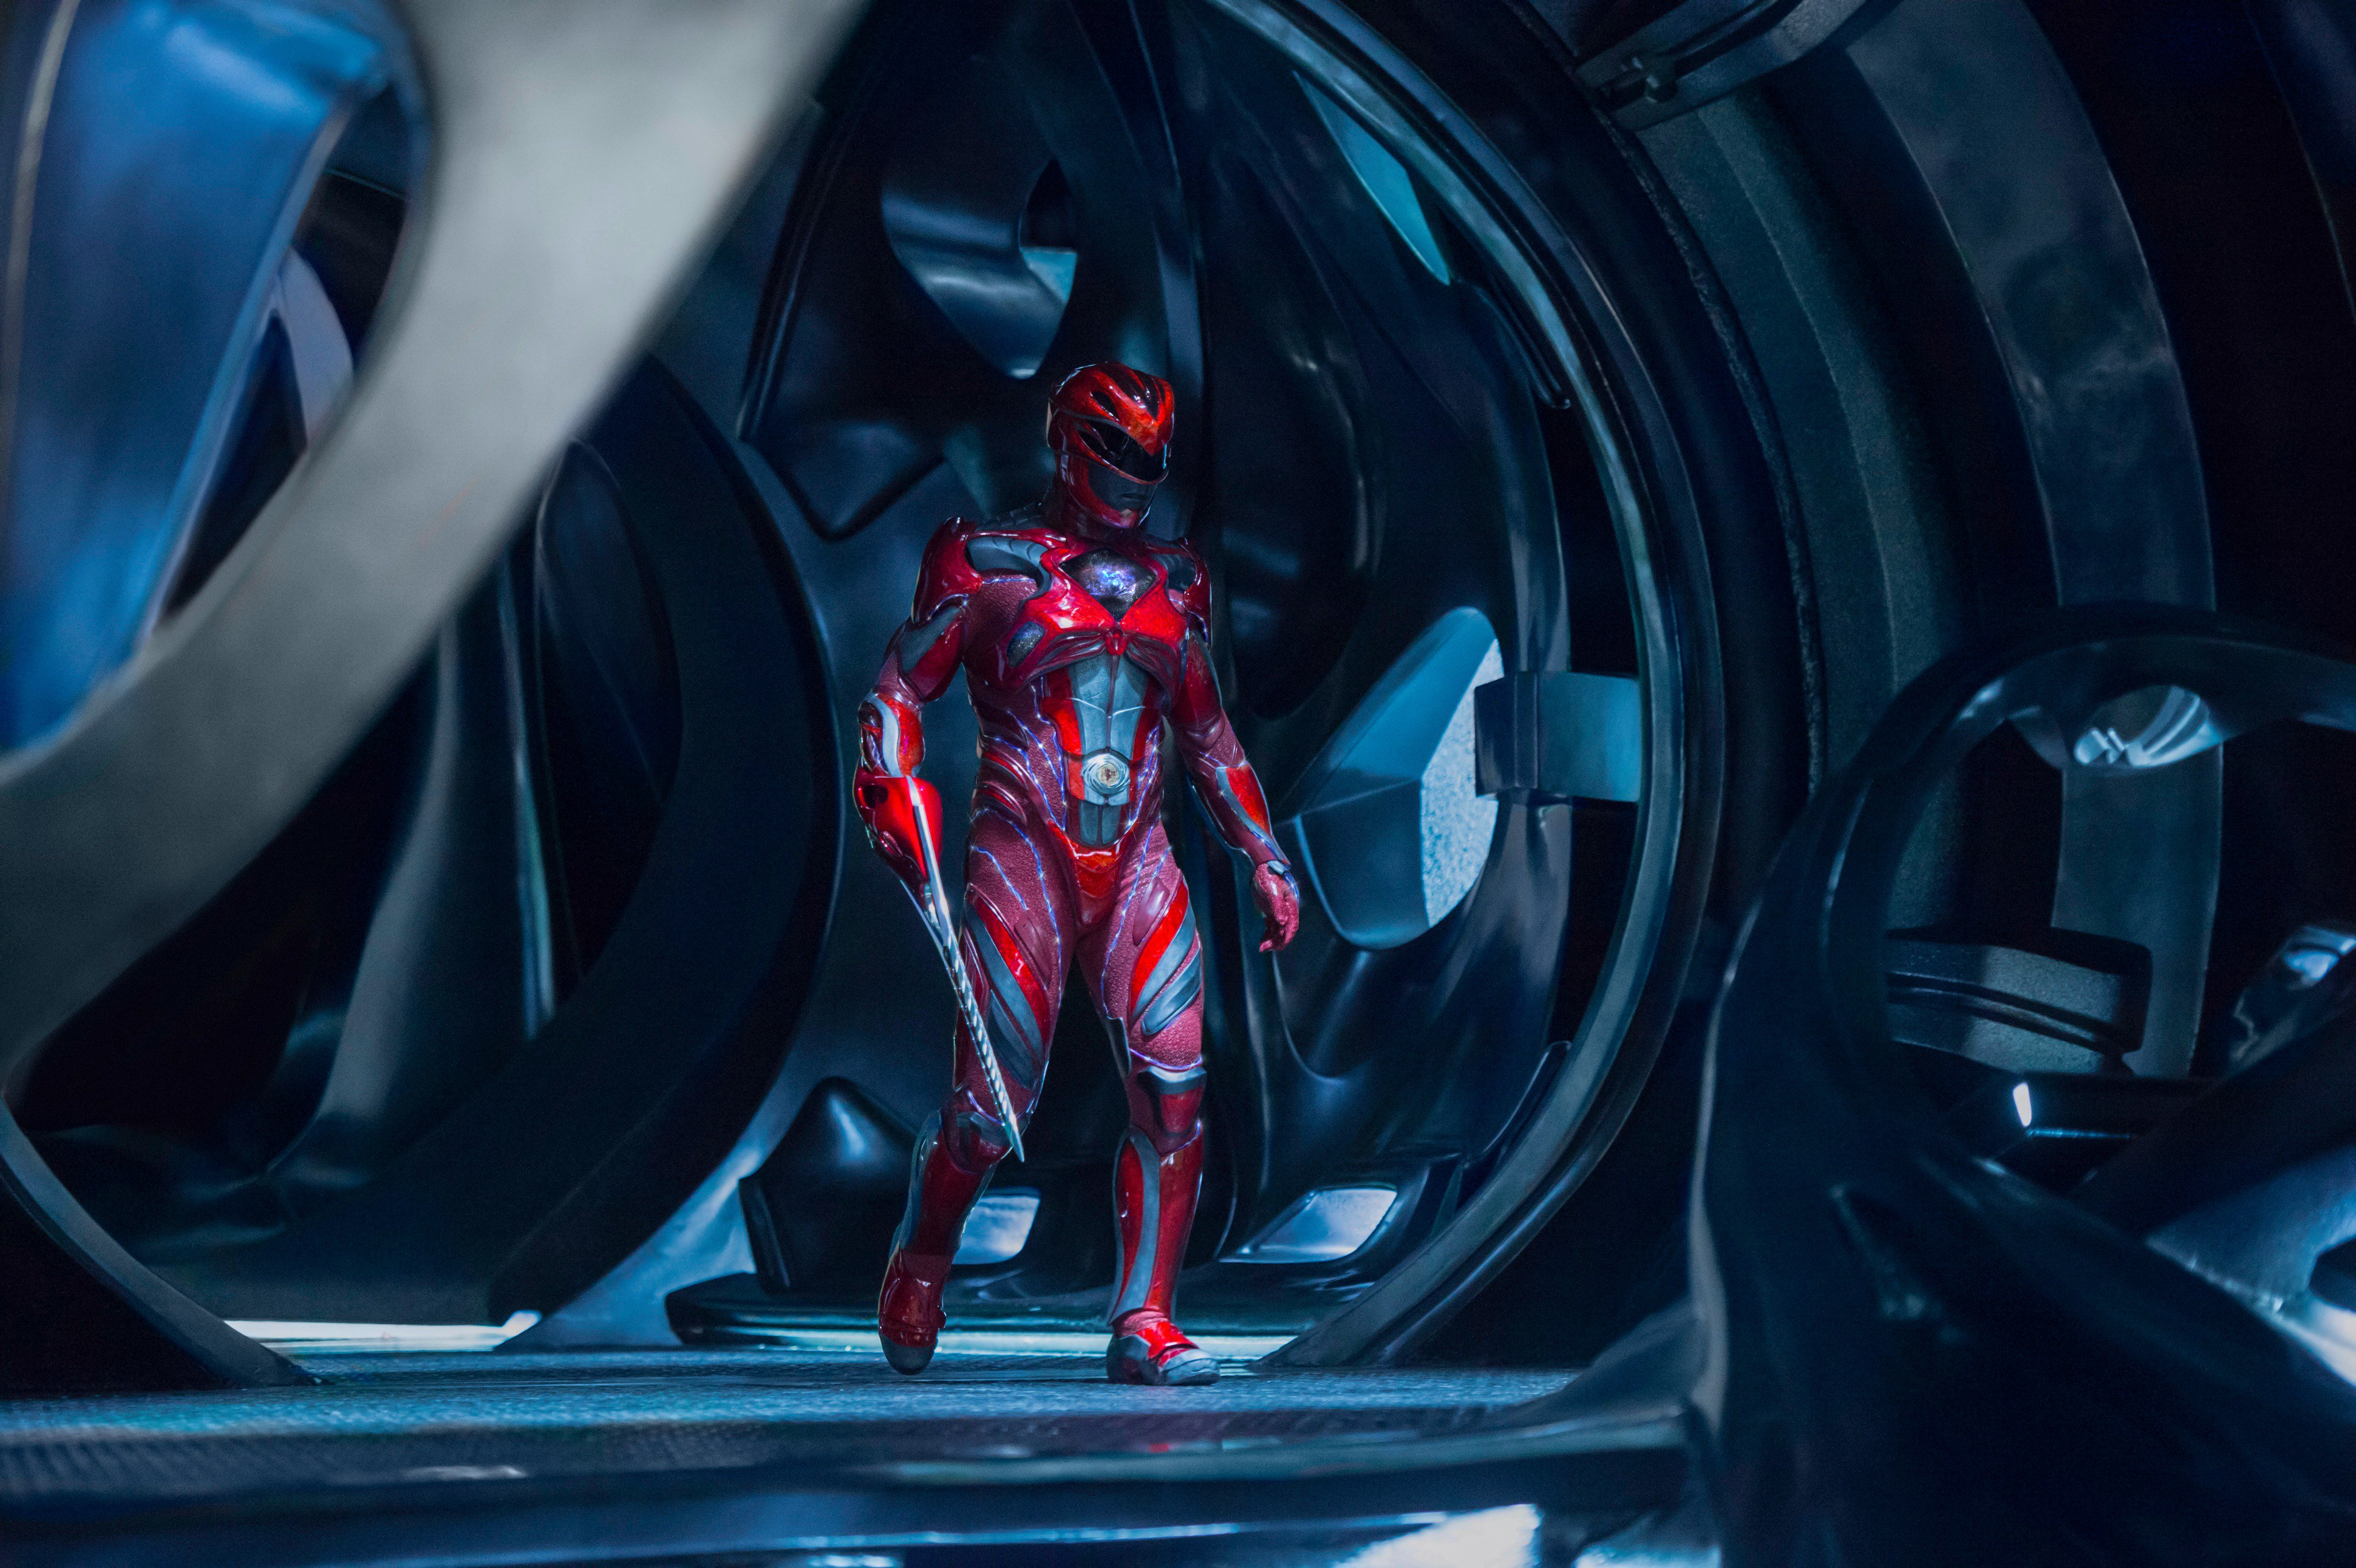 blqg8p2j (4096×2726) | power rangers 2017 | pinterest | hd